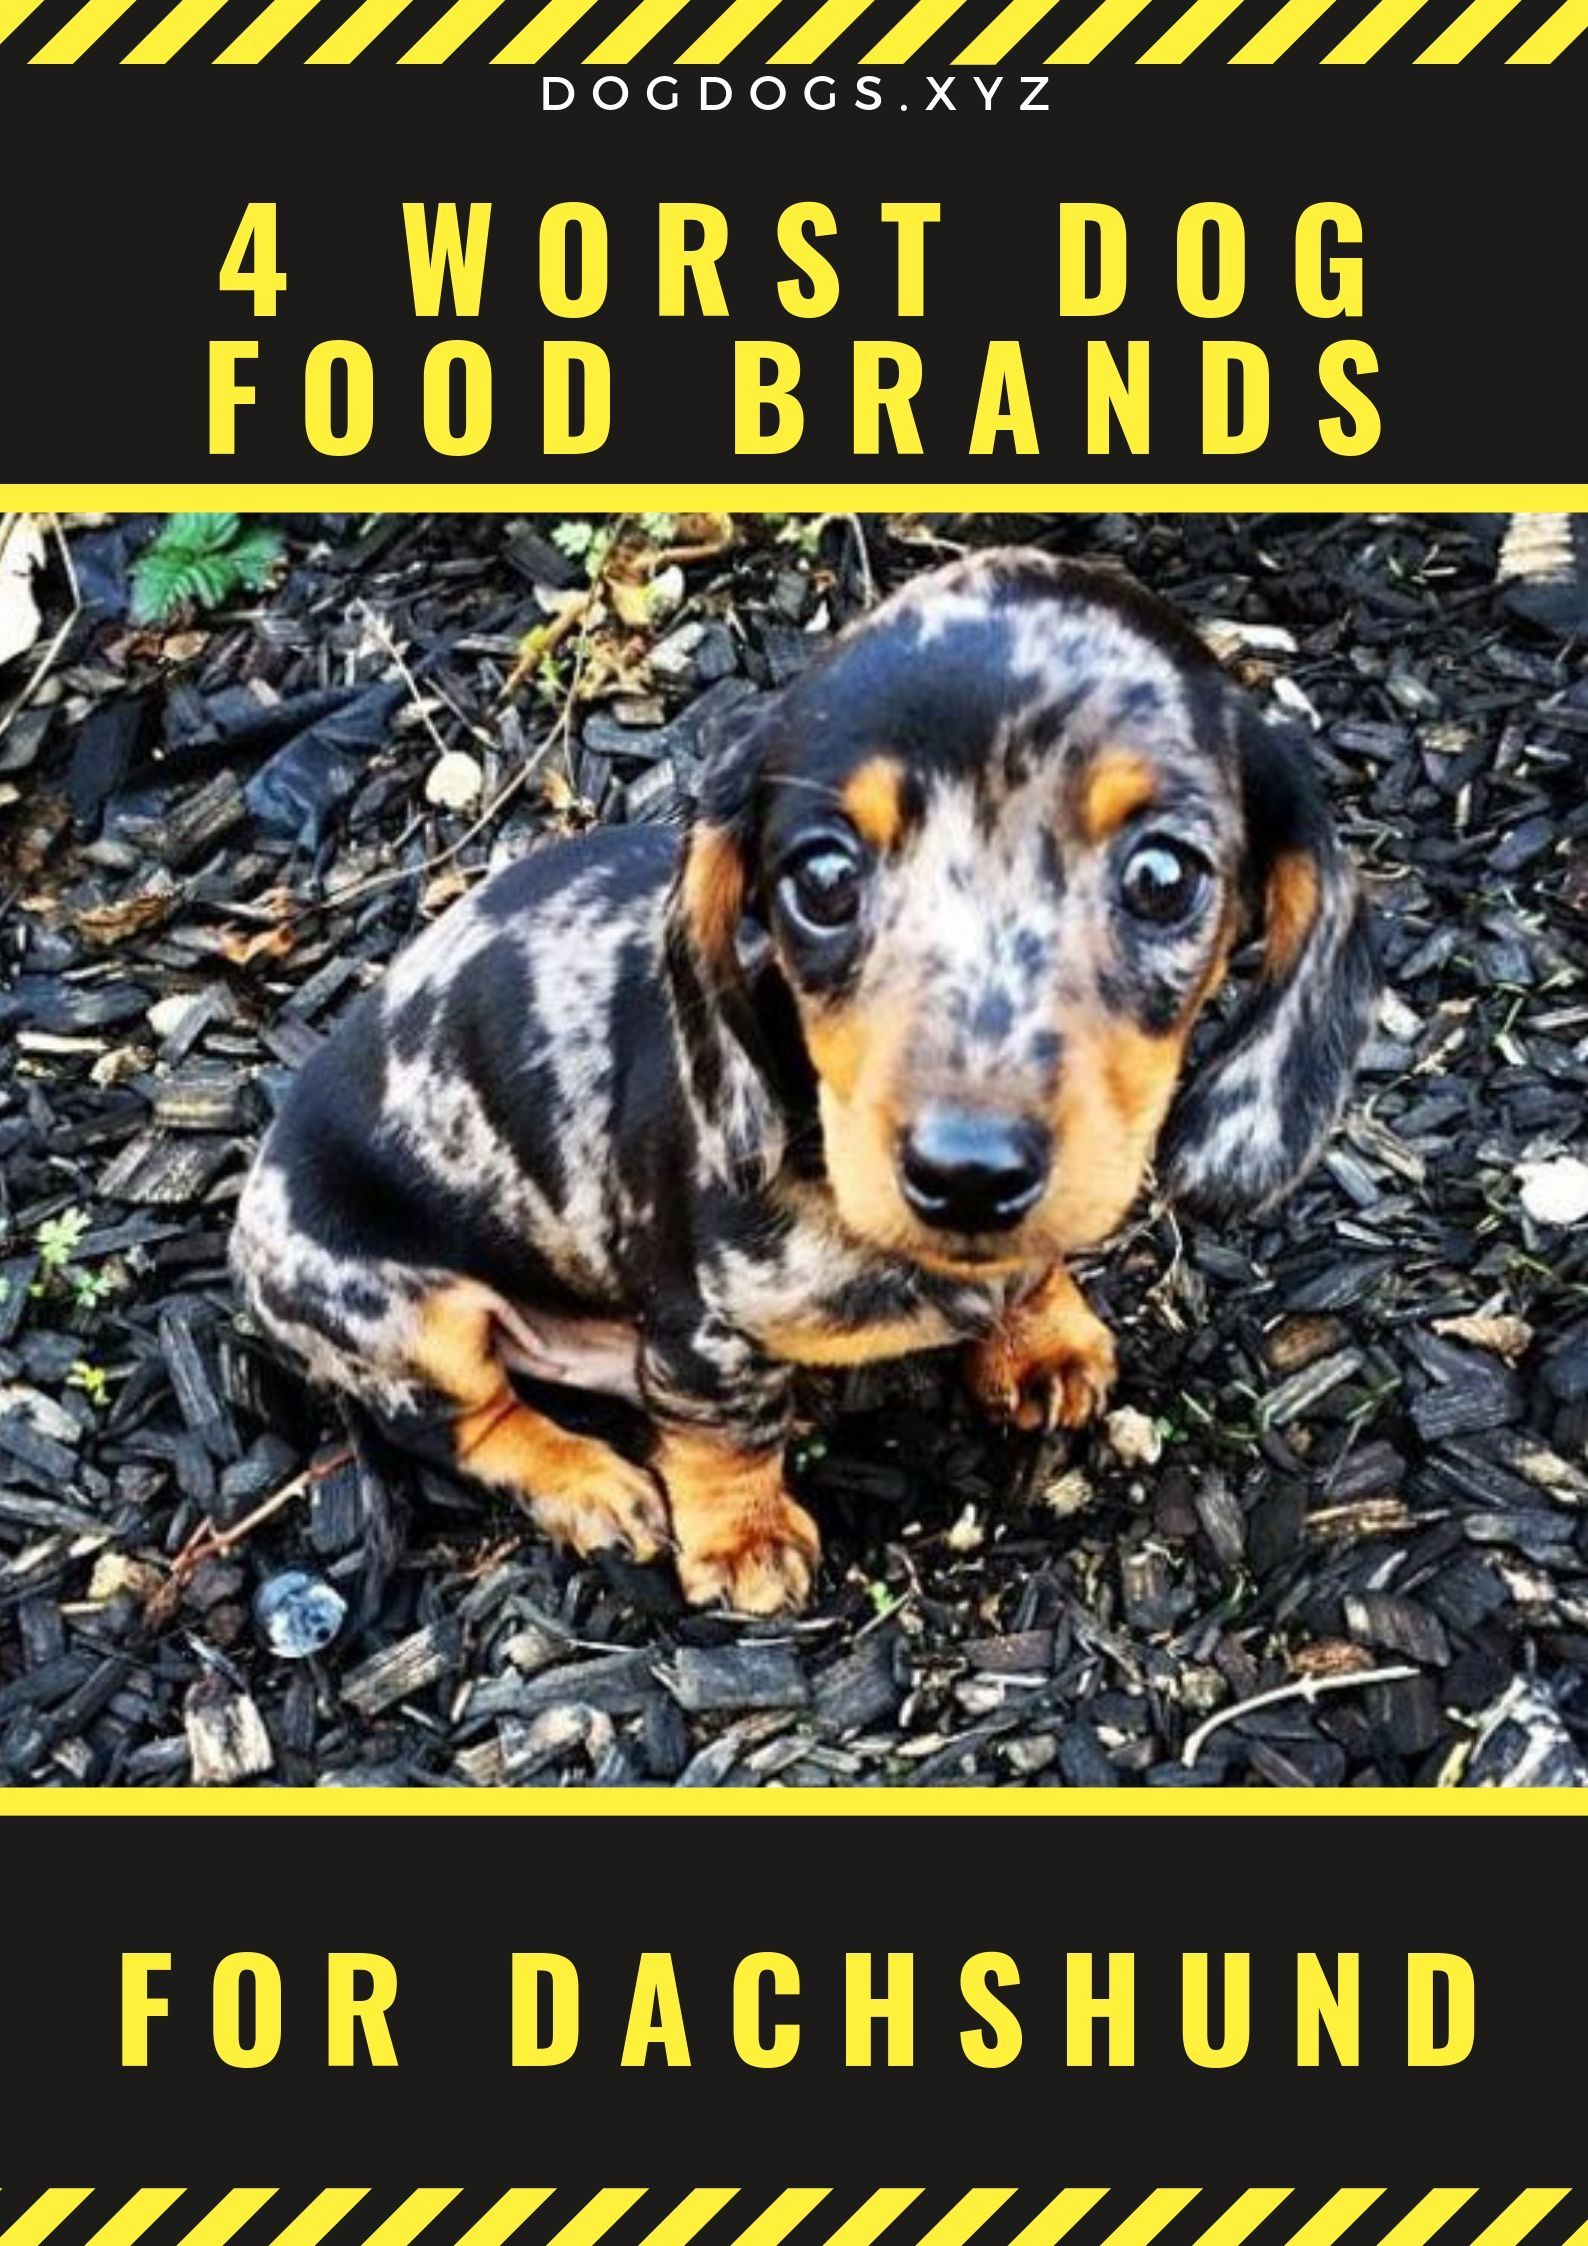 4 Dog Food Brands To Avoid Dogdogs Dog Food Brands Dog Food Recipes Dogs